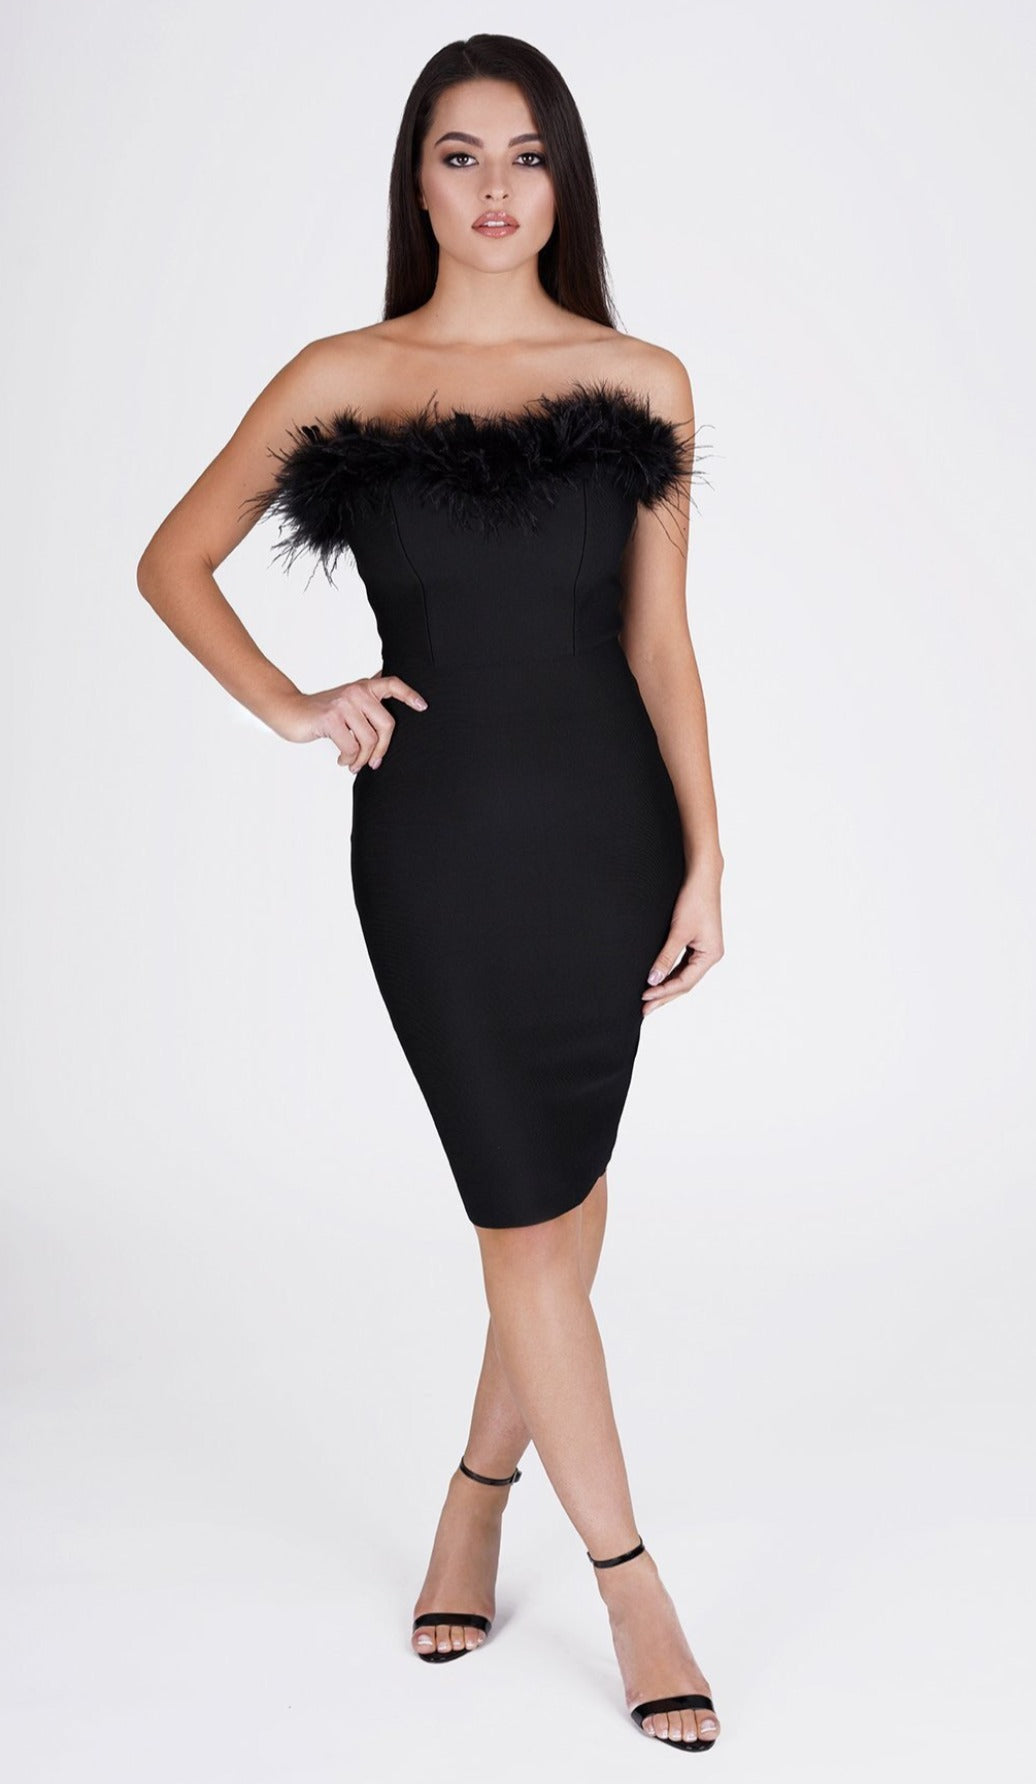 'FRANCESCA' Feather Bodycon Dress